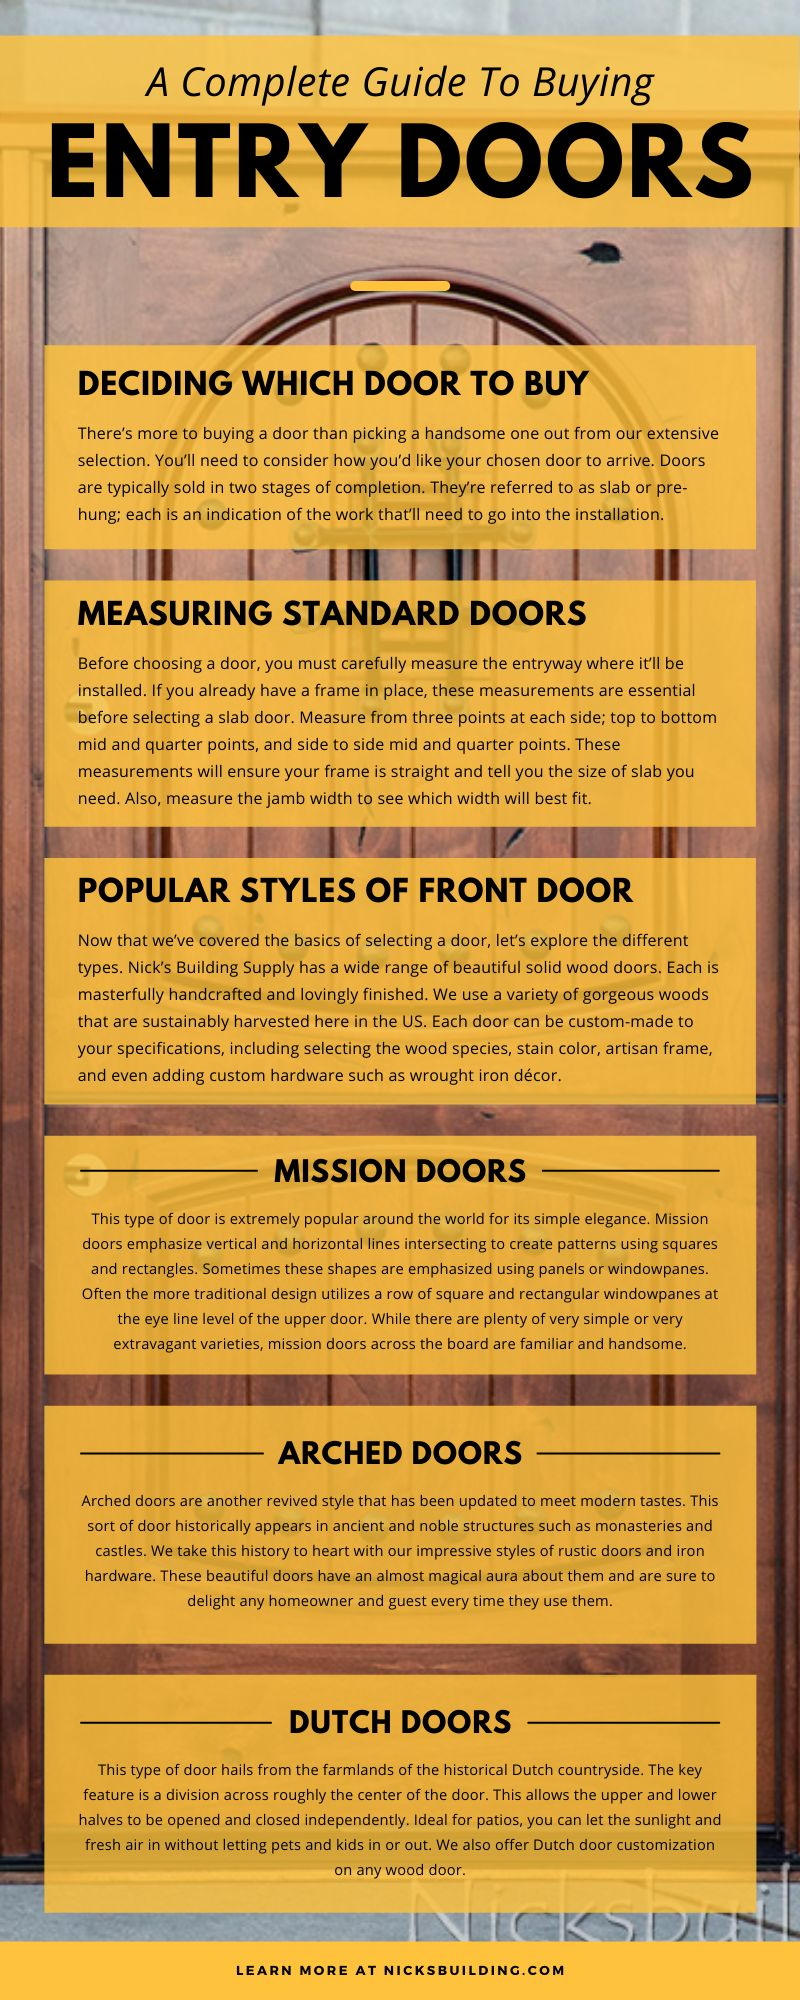 A Complete Guide To Buying Entry Doors